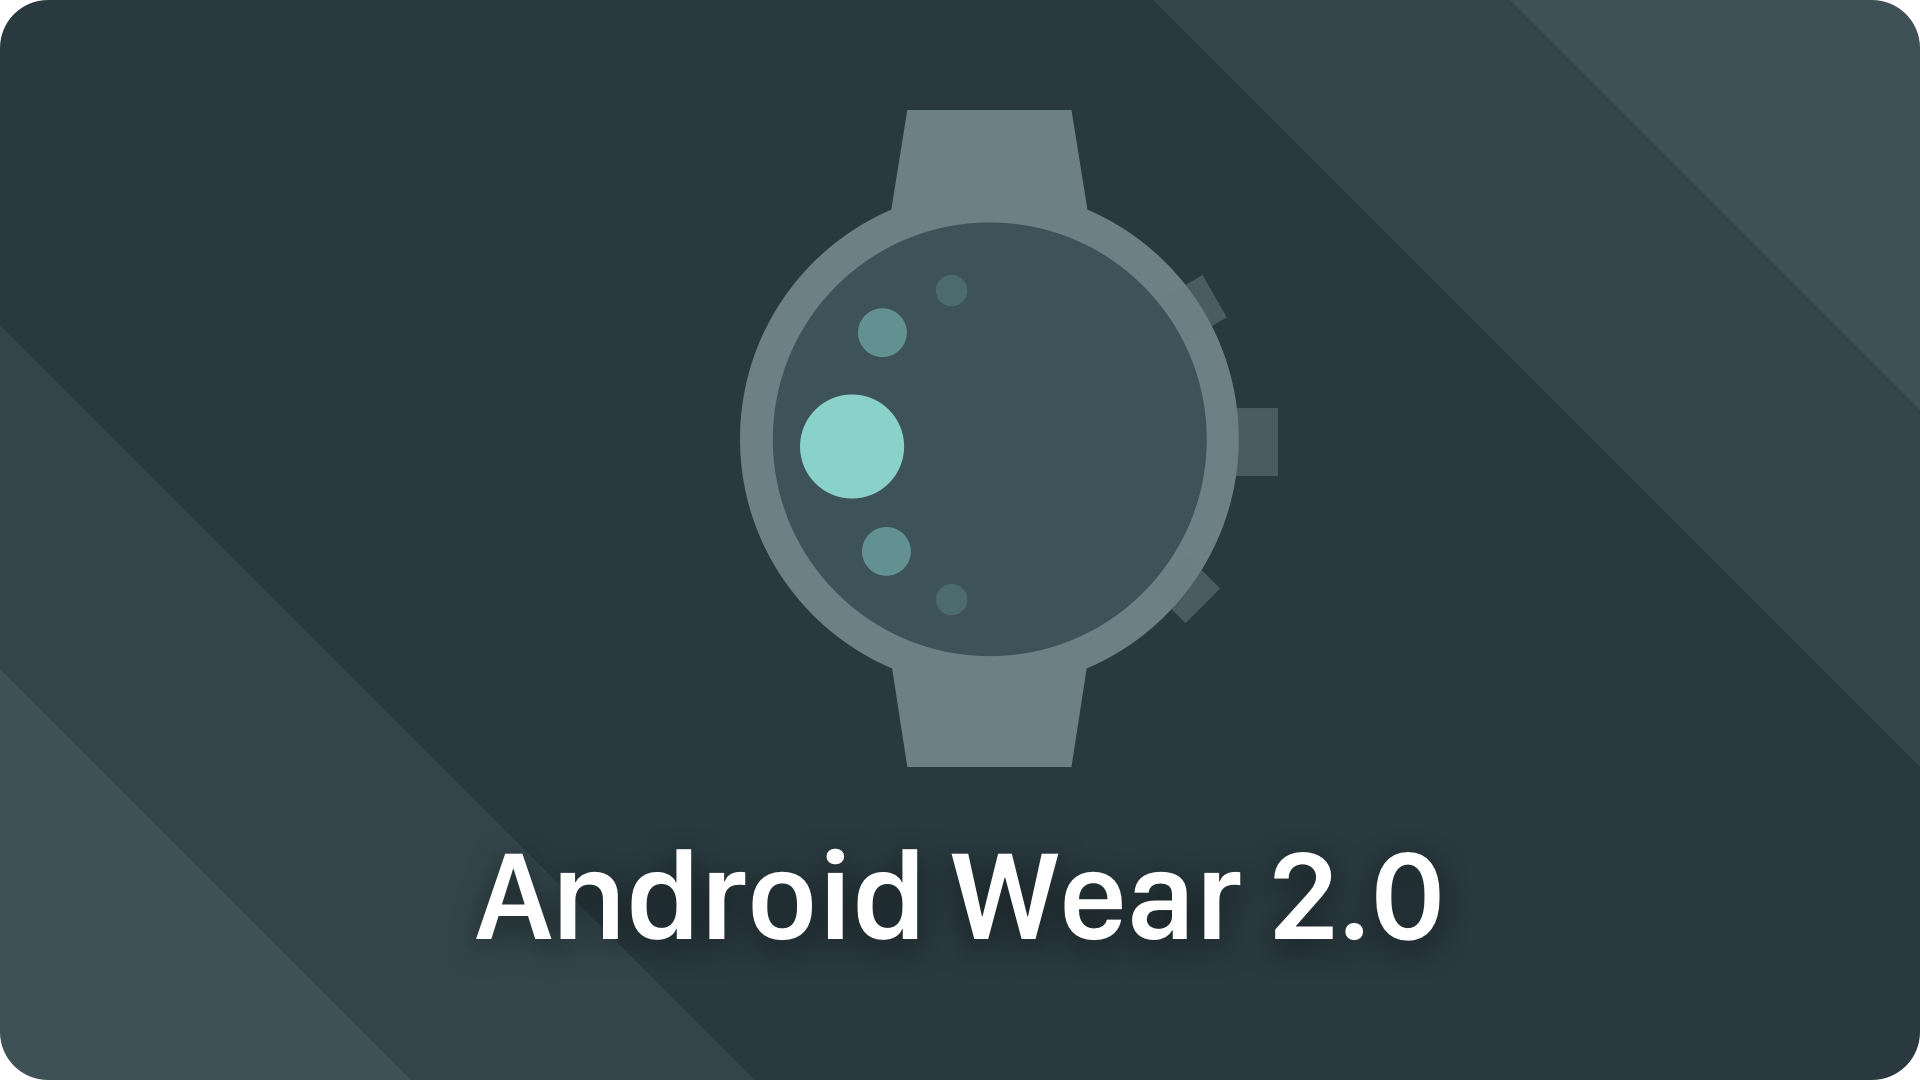 Android Wear 2 0 – Everything you need to know to design